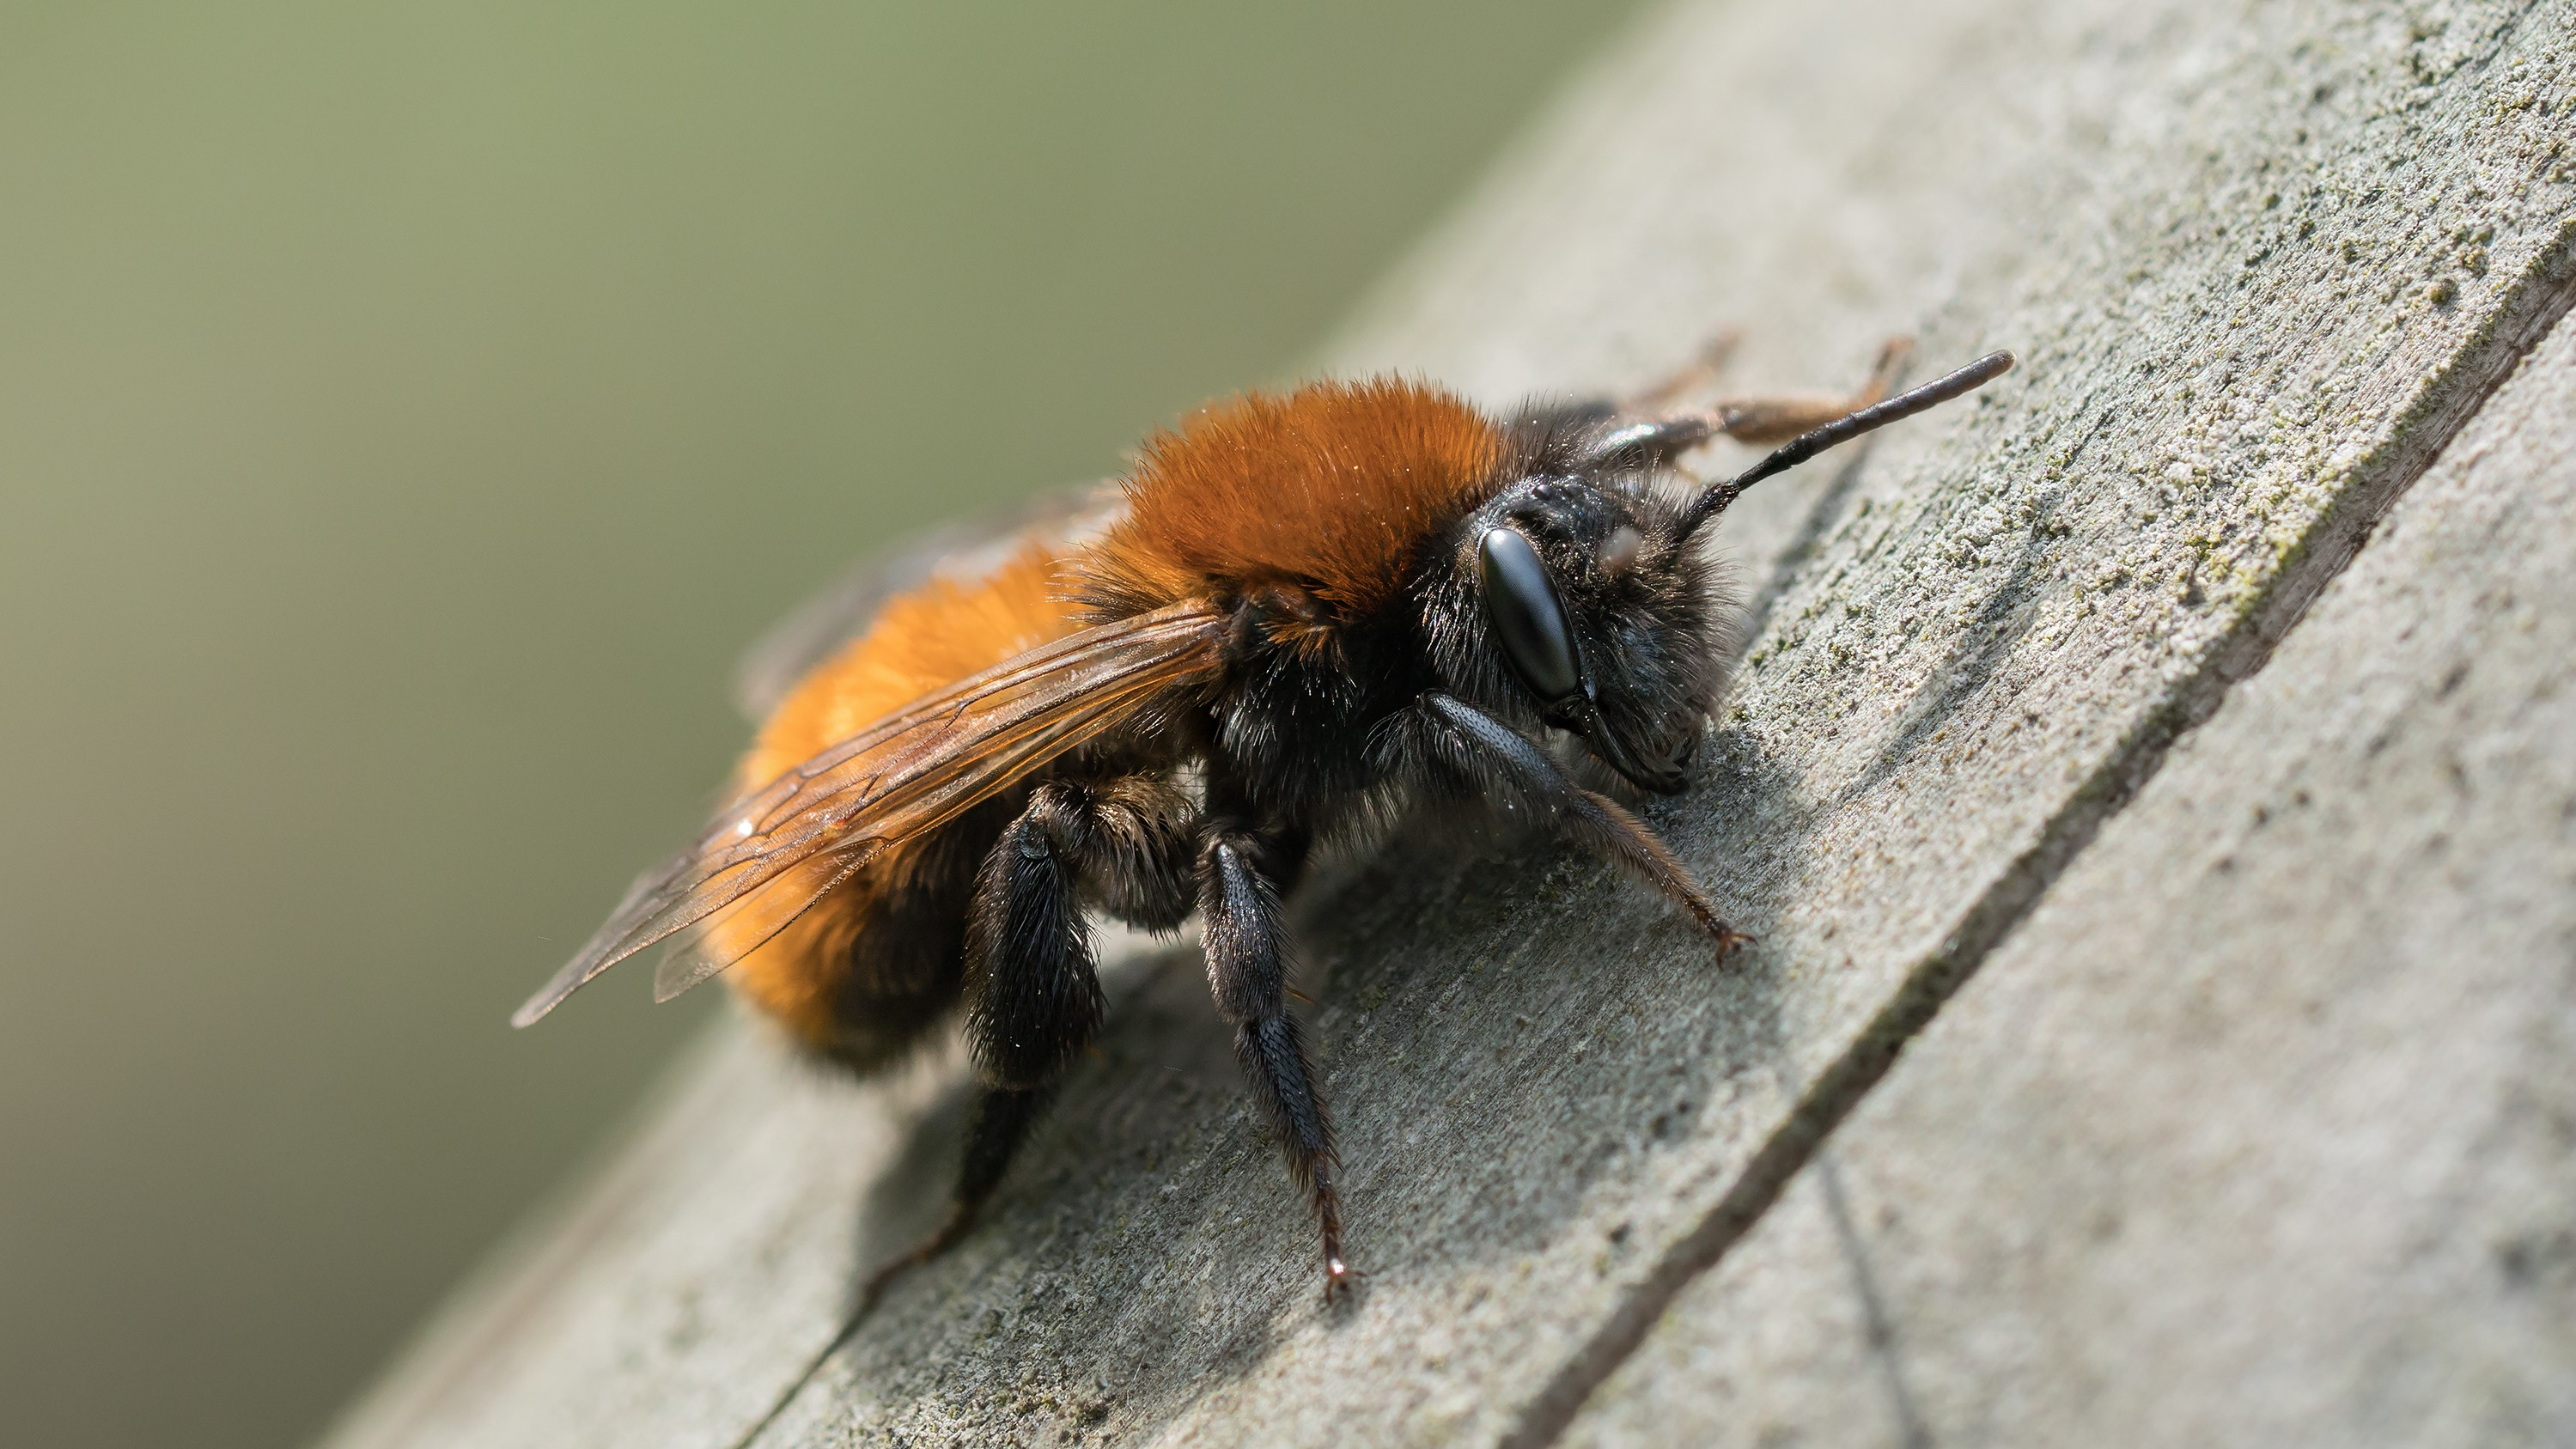 Attract Bees - Attract mining bees - tawny mining bee